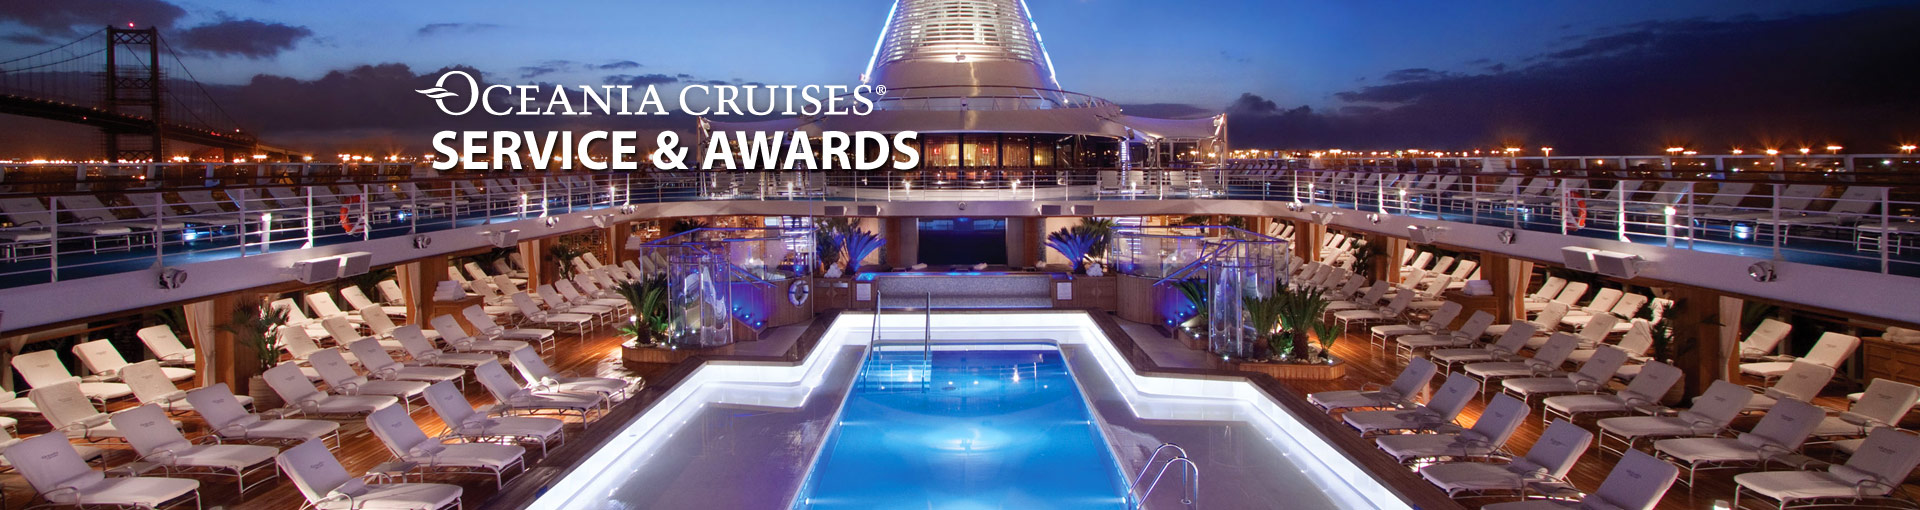 Oceania Cruises Service & Awards